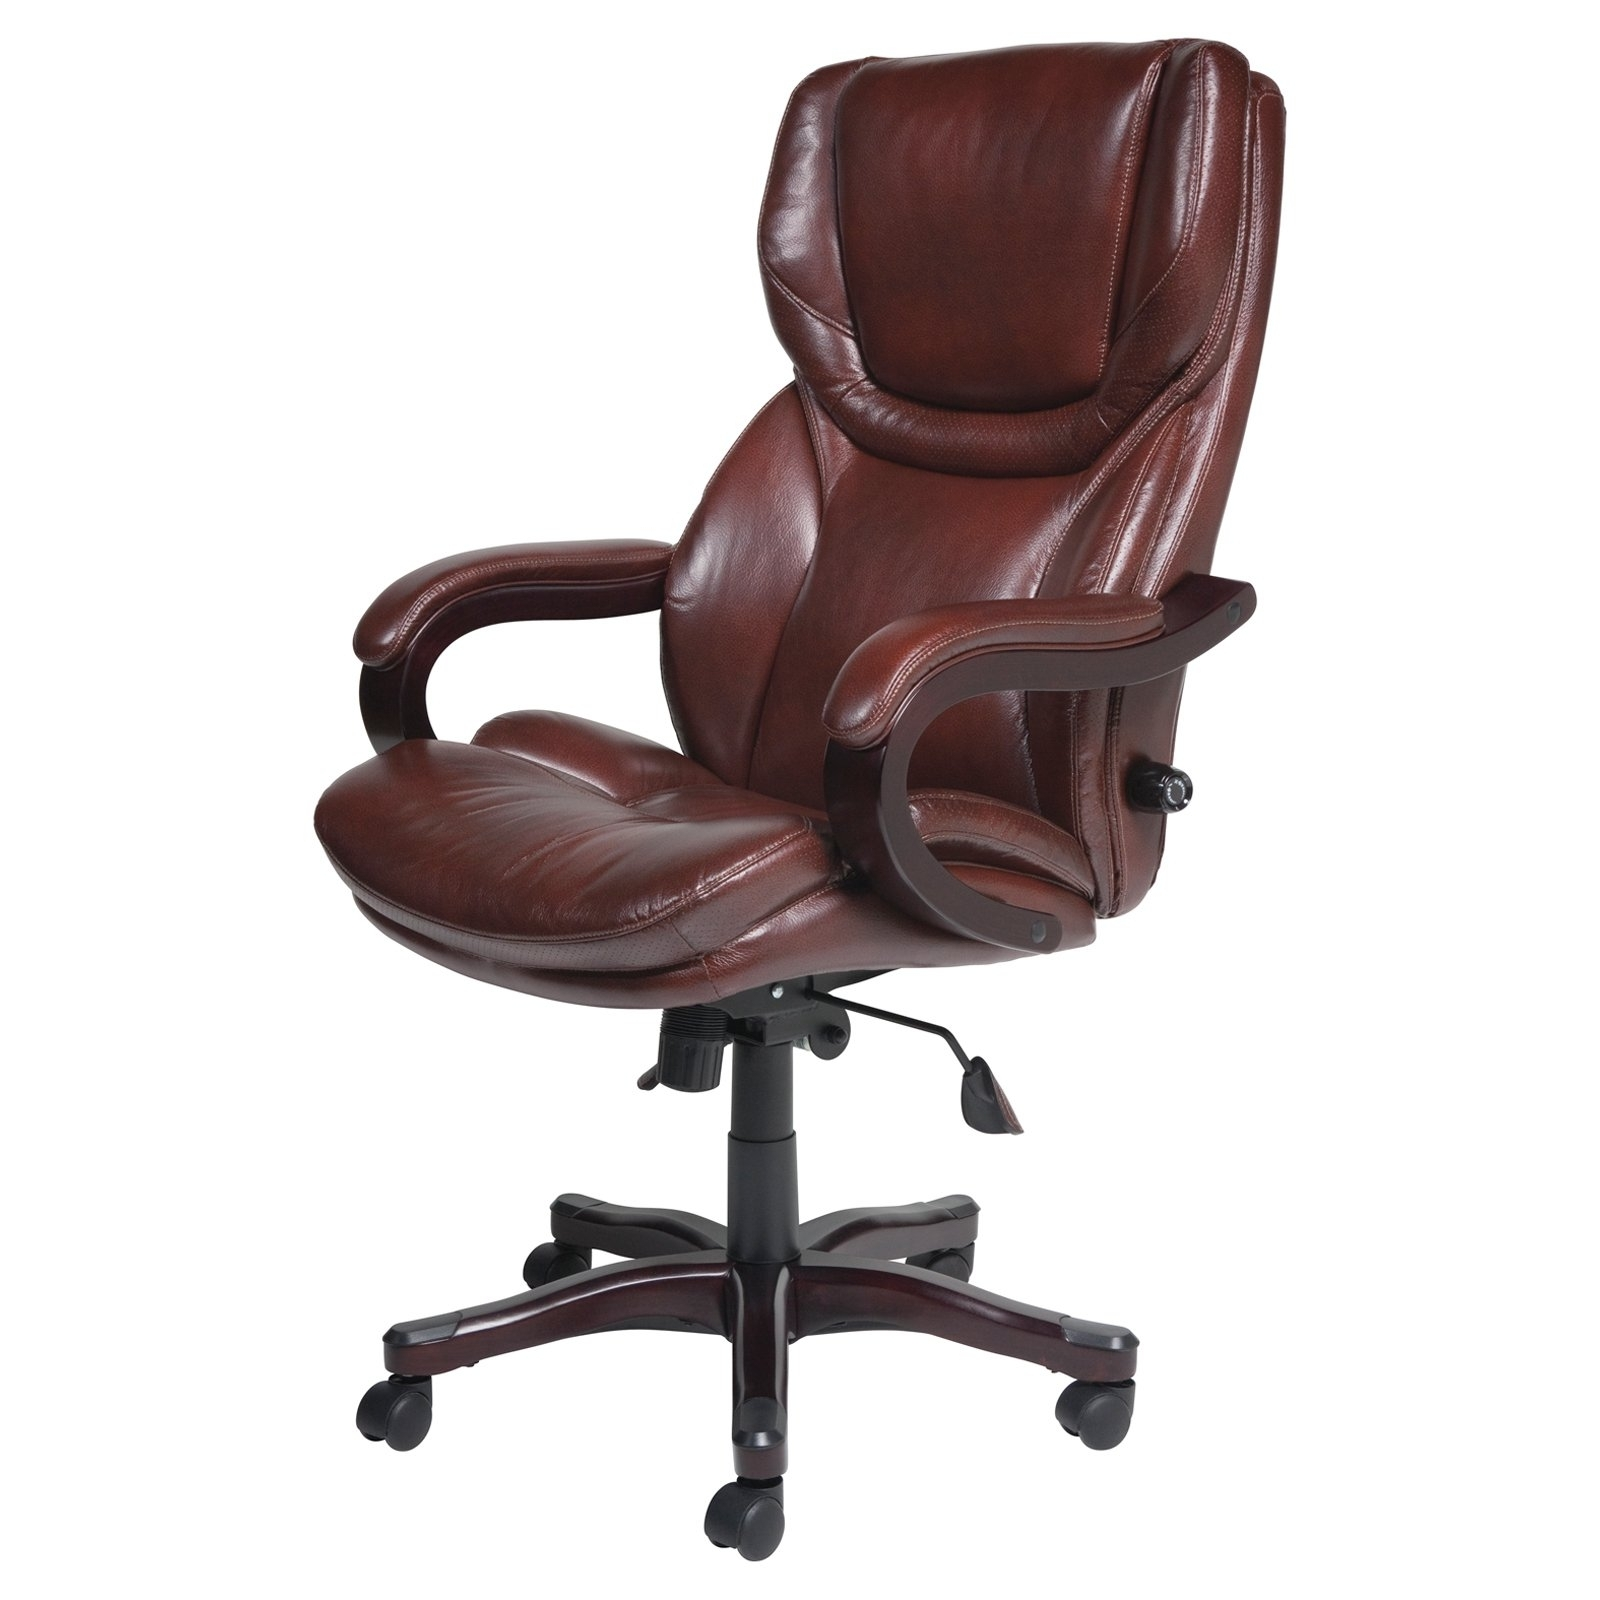 Brown Leather Executive Office Chairs Pertaining To Fashionable Chair : Ergonomic Black Leather Executive Office Chair Verona (View 9 of 20)